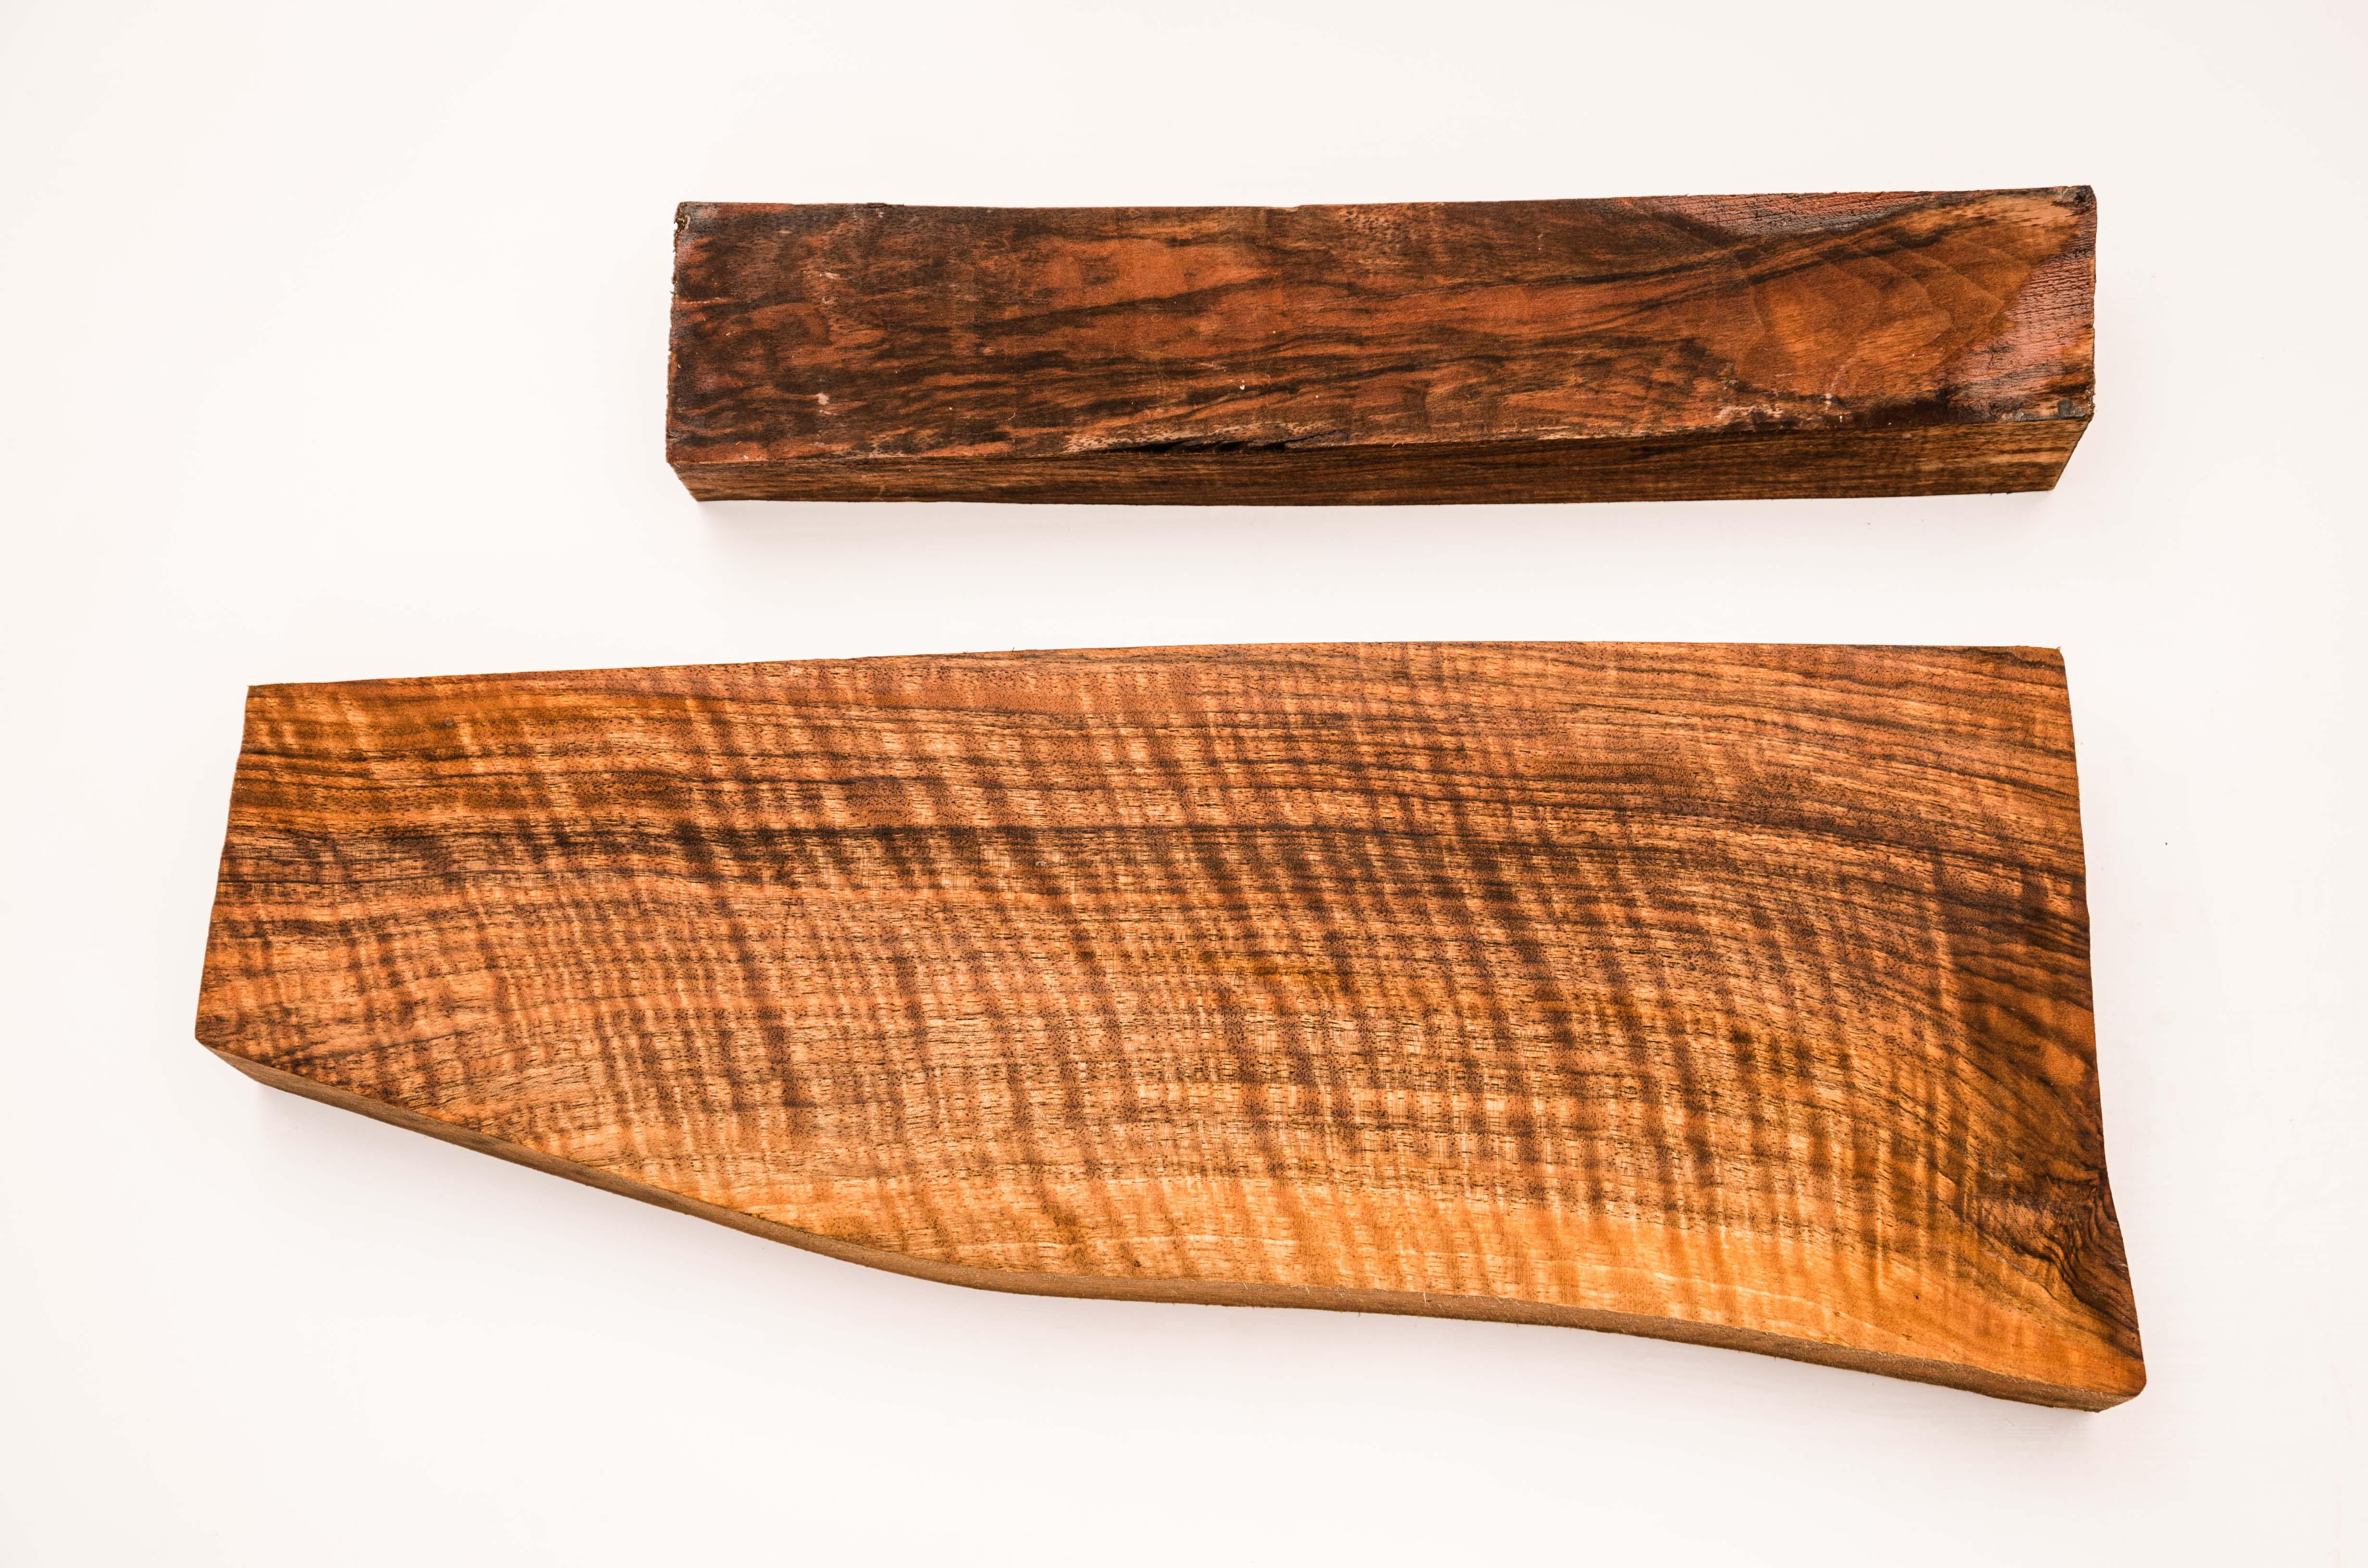 walnut_stock_blanks_for_guns_and_rifles-0588